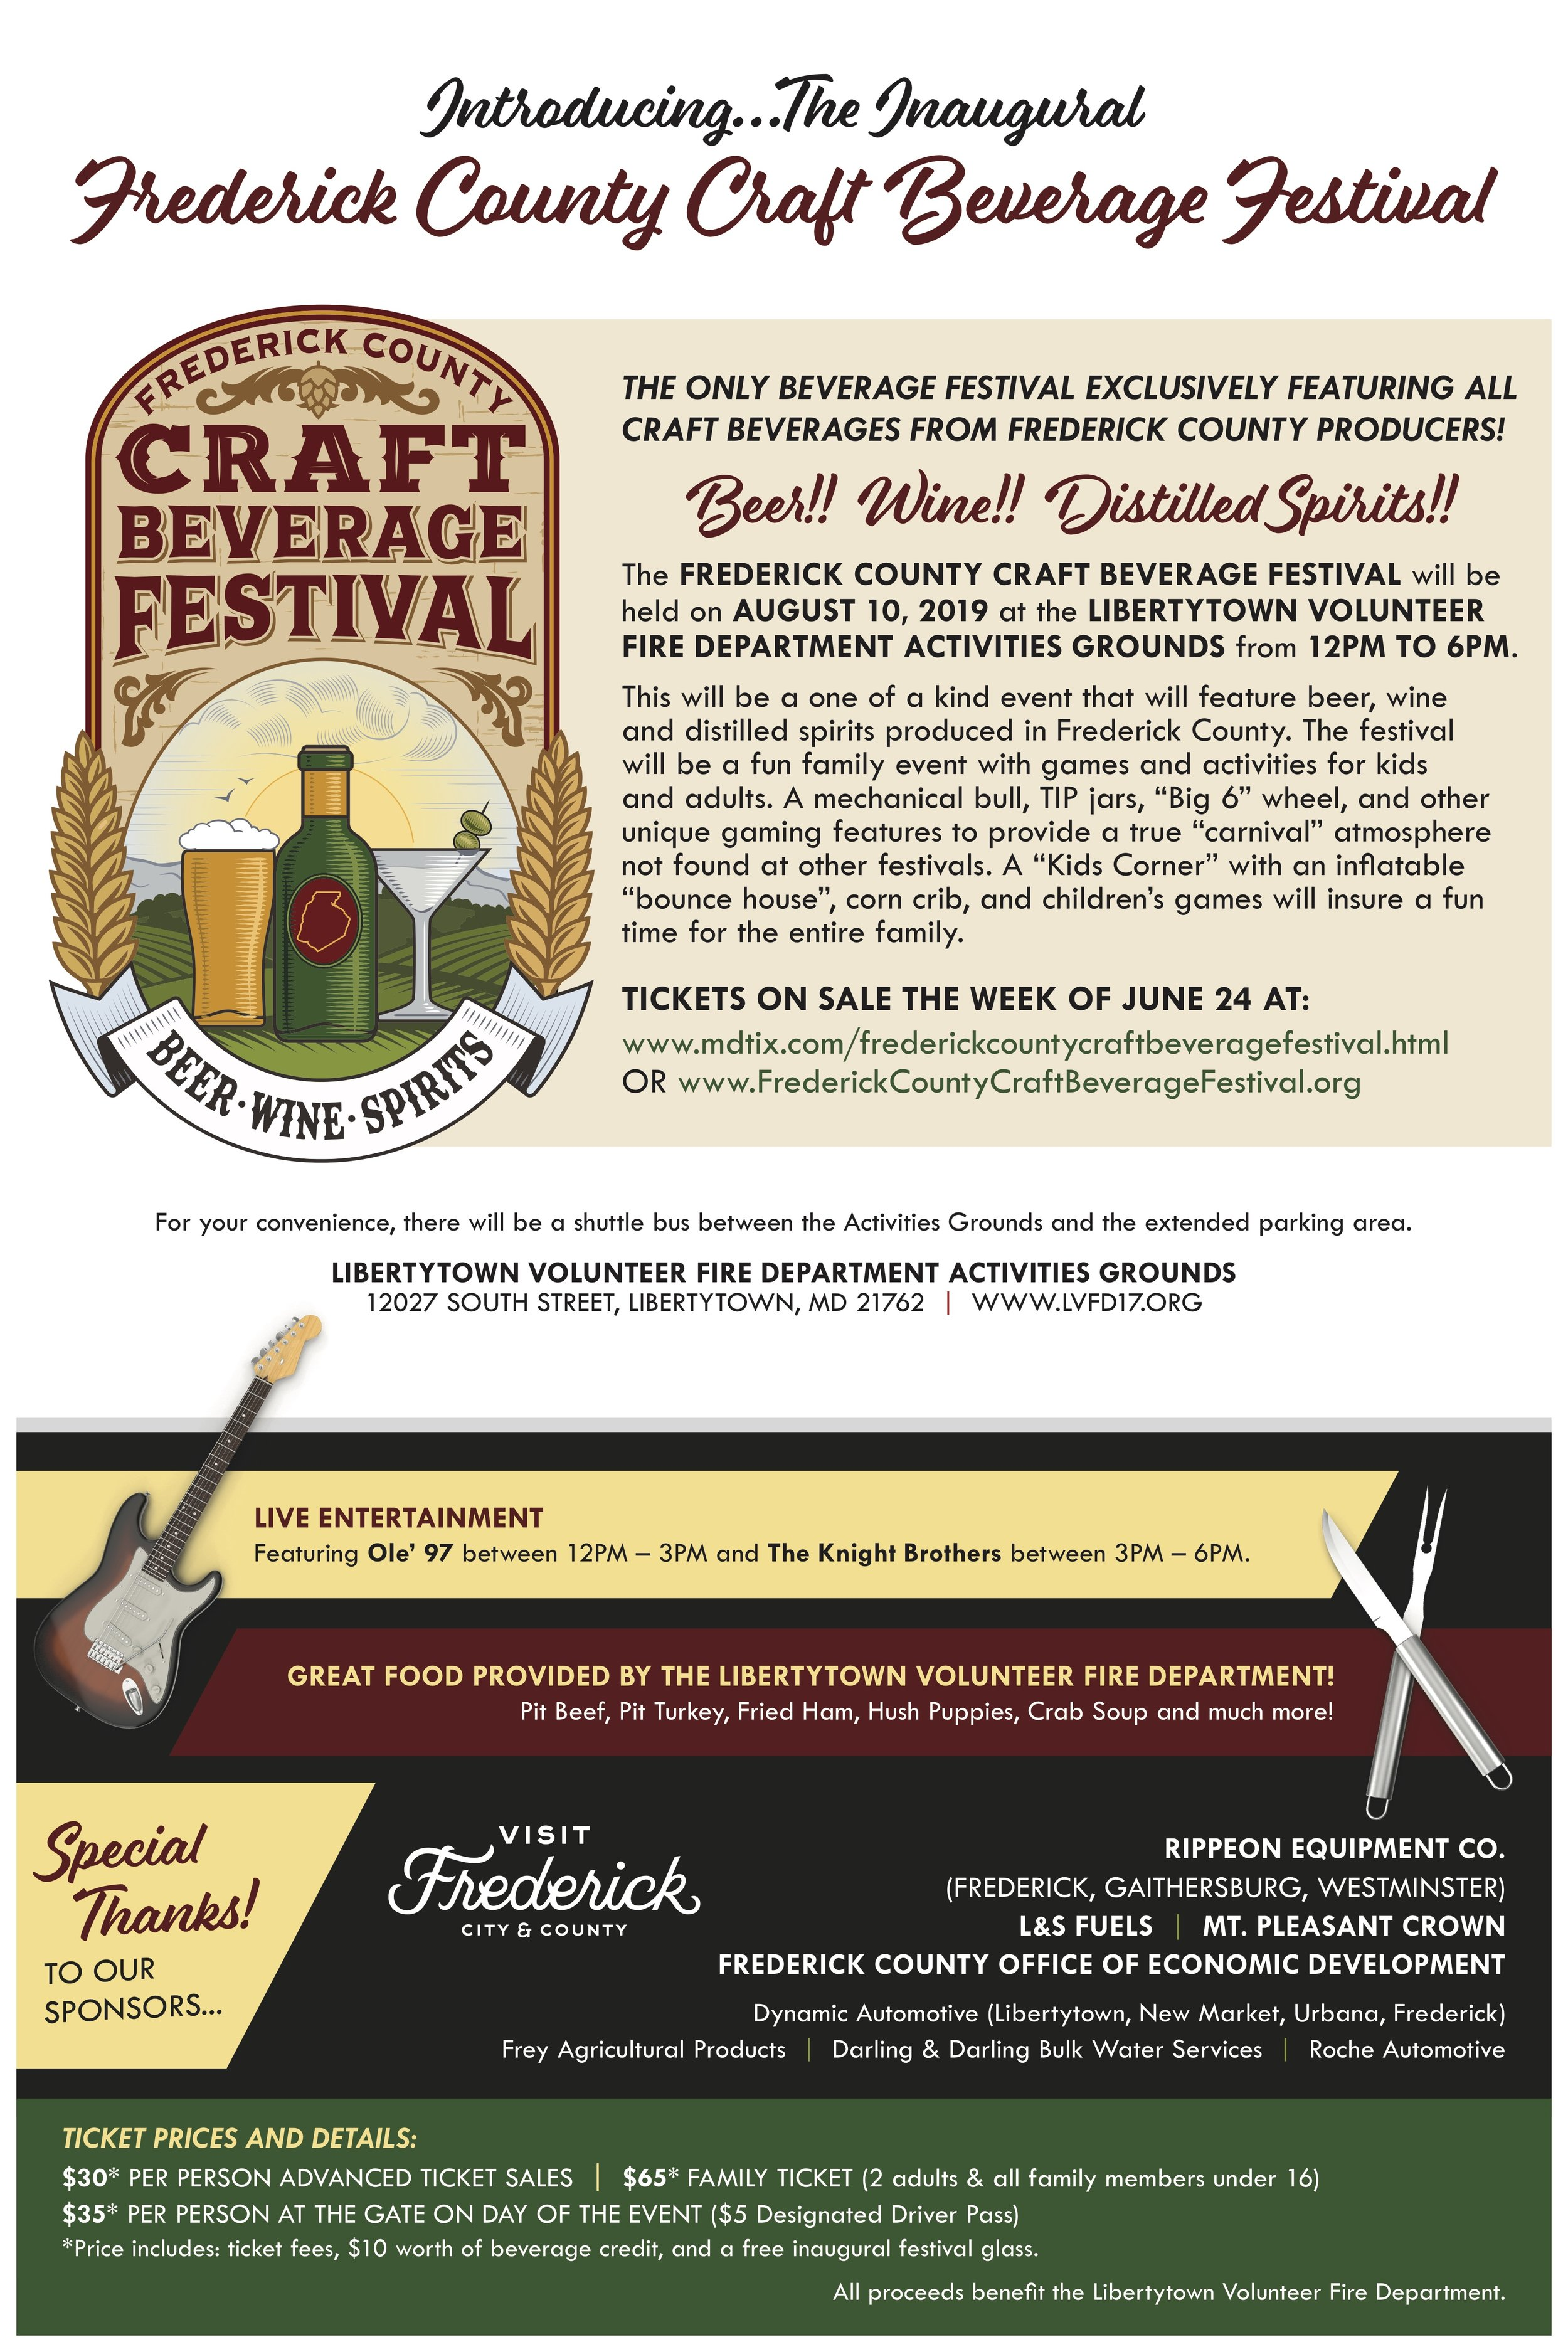 Frederick County Craft Beverage Festival Poster